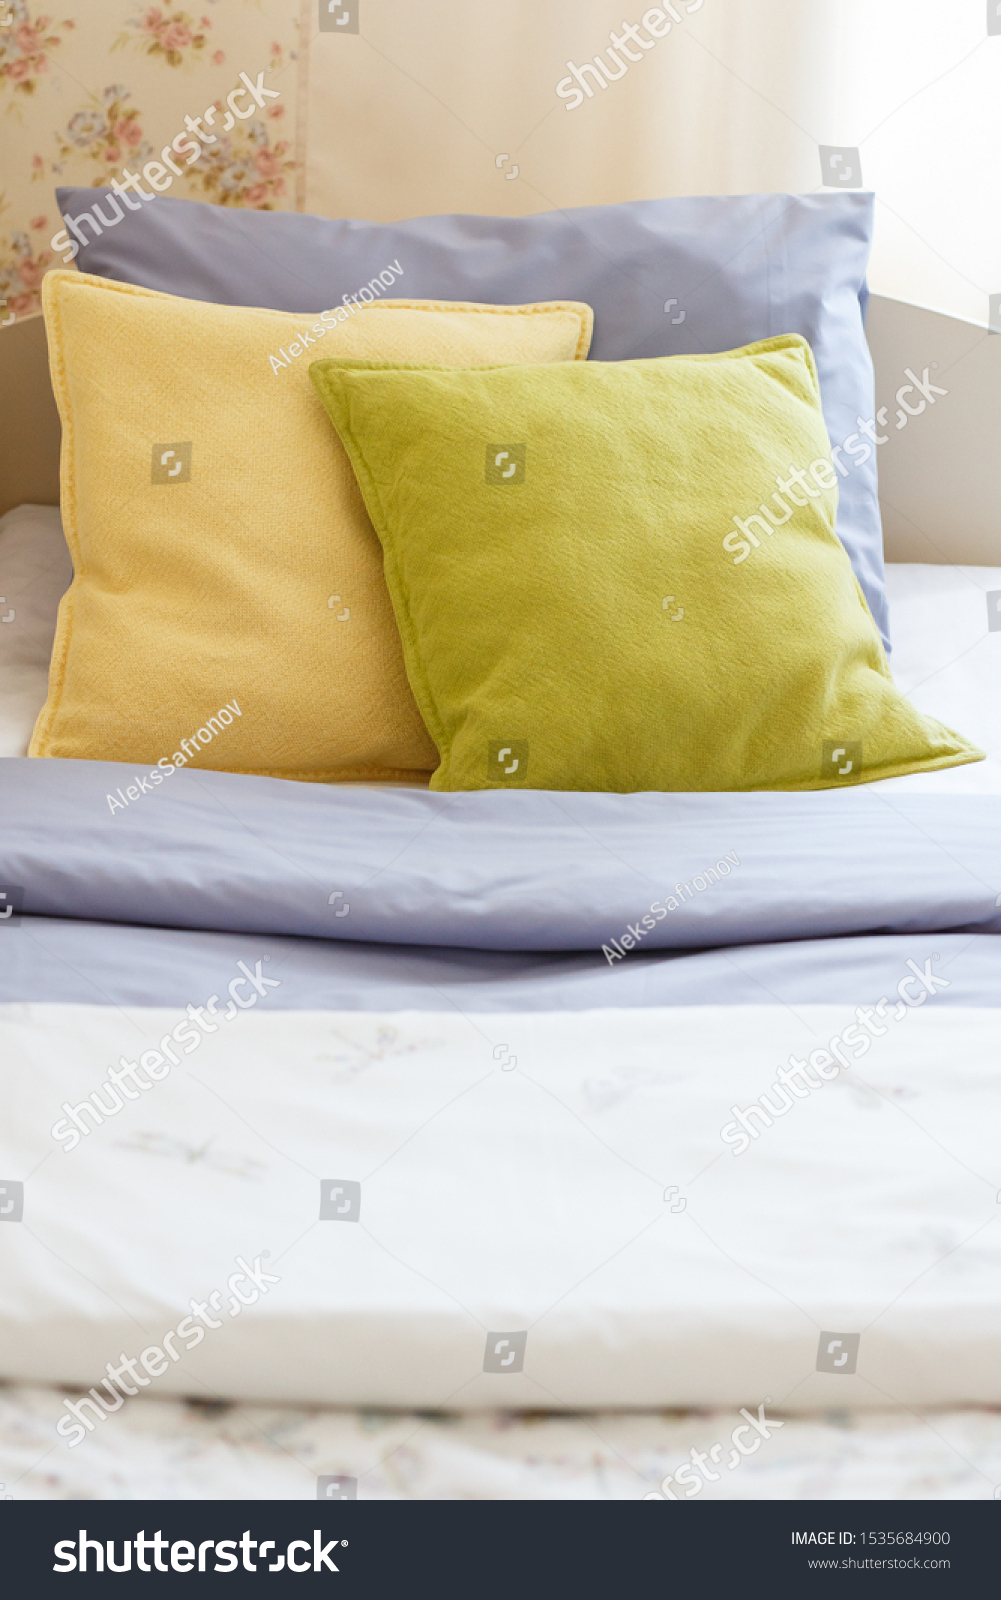 Bright Colored Pillows On Bed Stock Photo Edit Now 1535684900